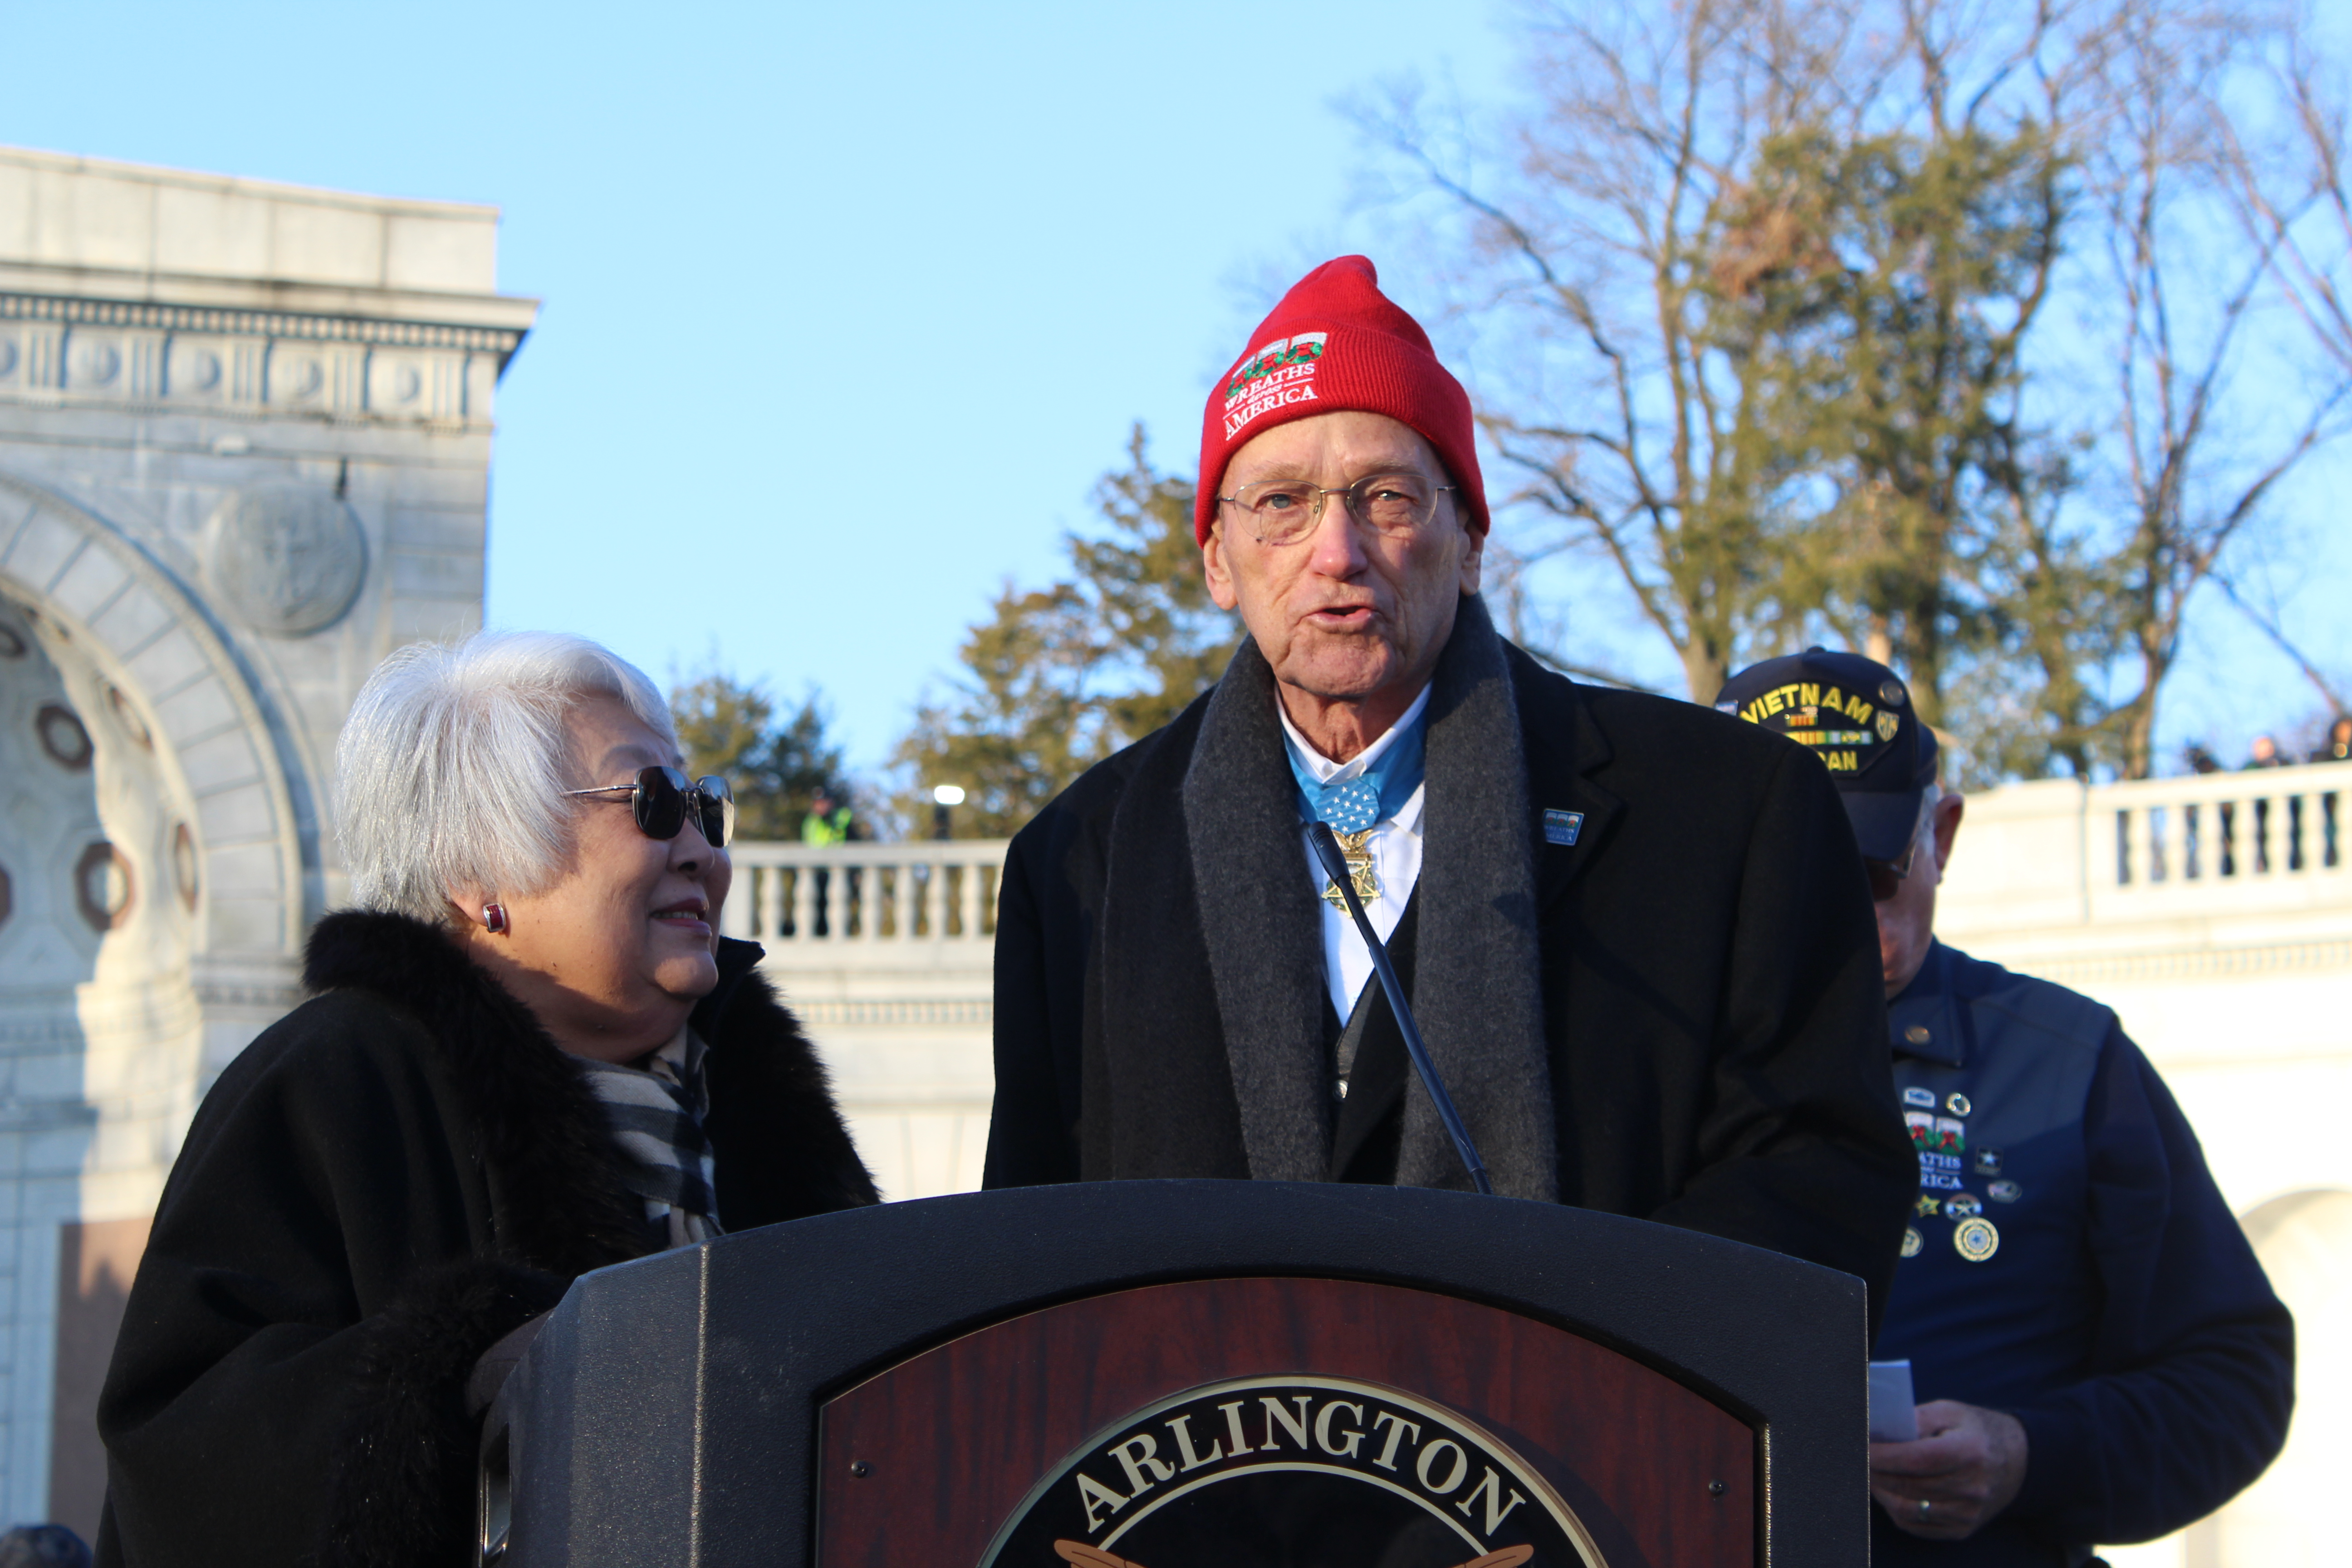 Medal of Honor Recipient Col. Roger Donolon Addresses Opening Ceremony Of Wreaths Across America Dec 16, 2017 (Julia Nista/The Daily Caller)